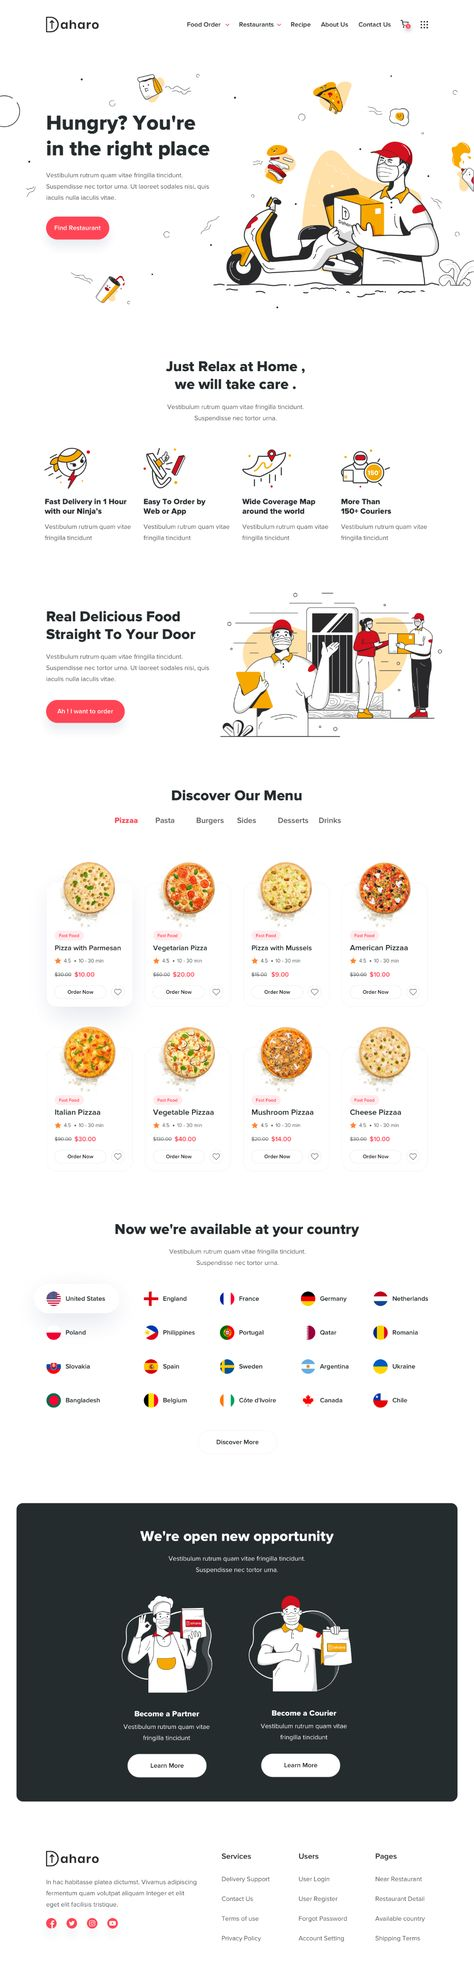 Daharo Landing Page - Food Delivery